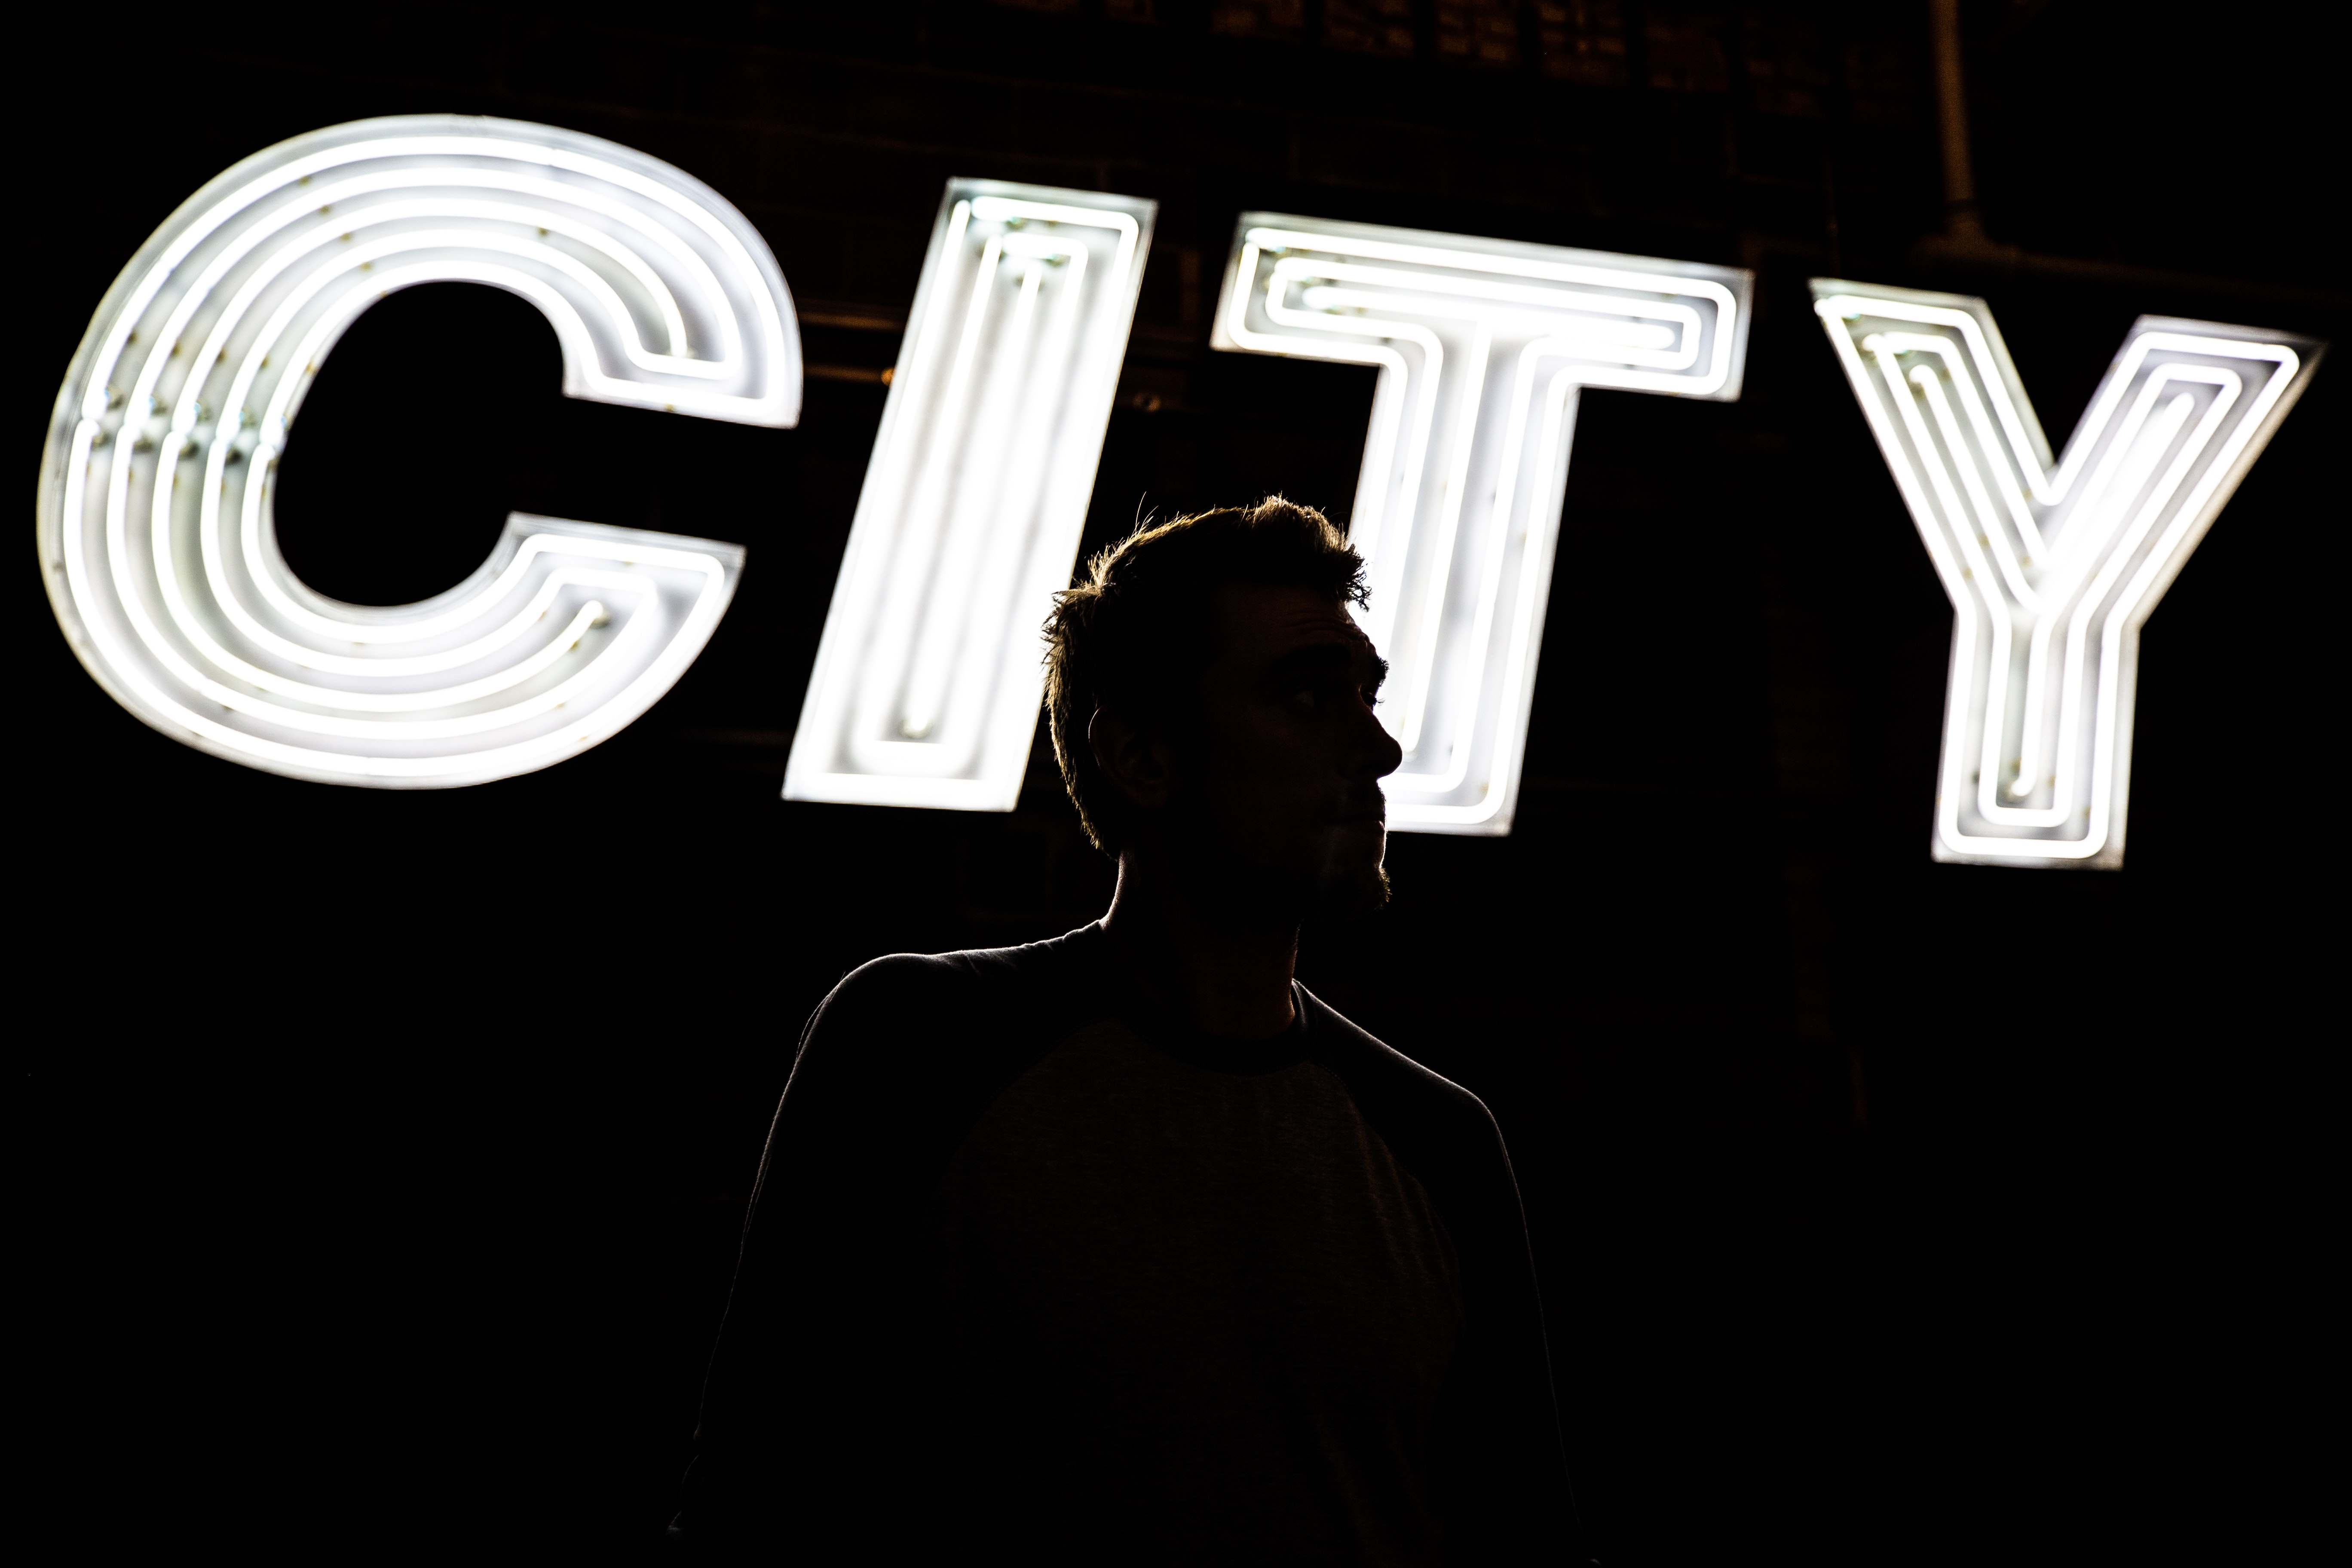 man standing in front of CITY light signage